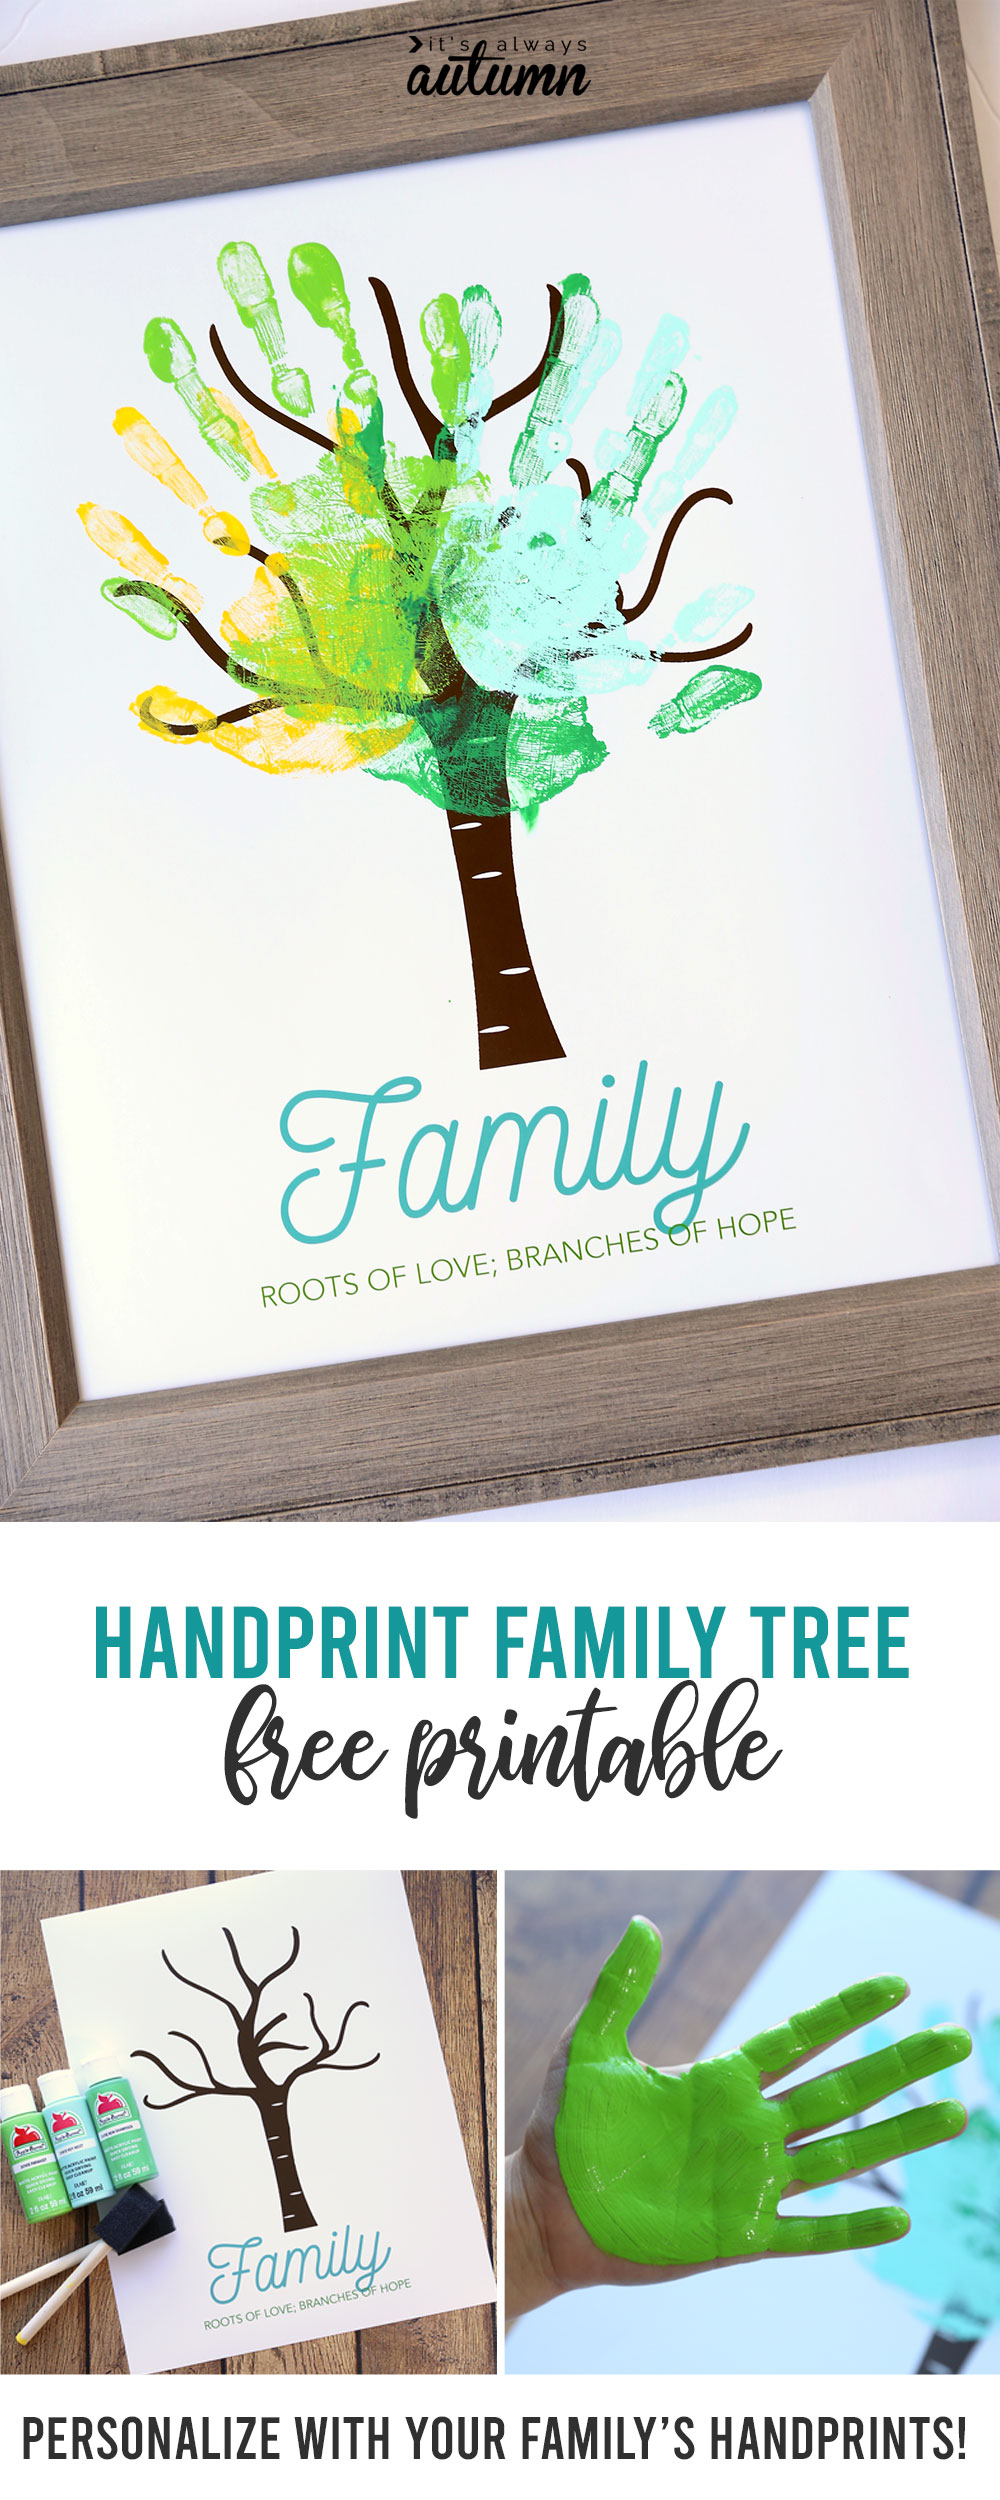 Family tree with handprints for the leaves